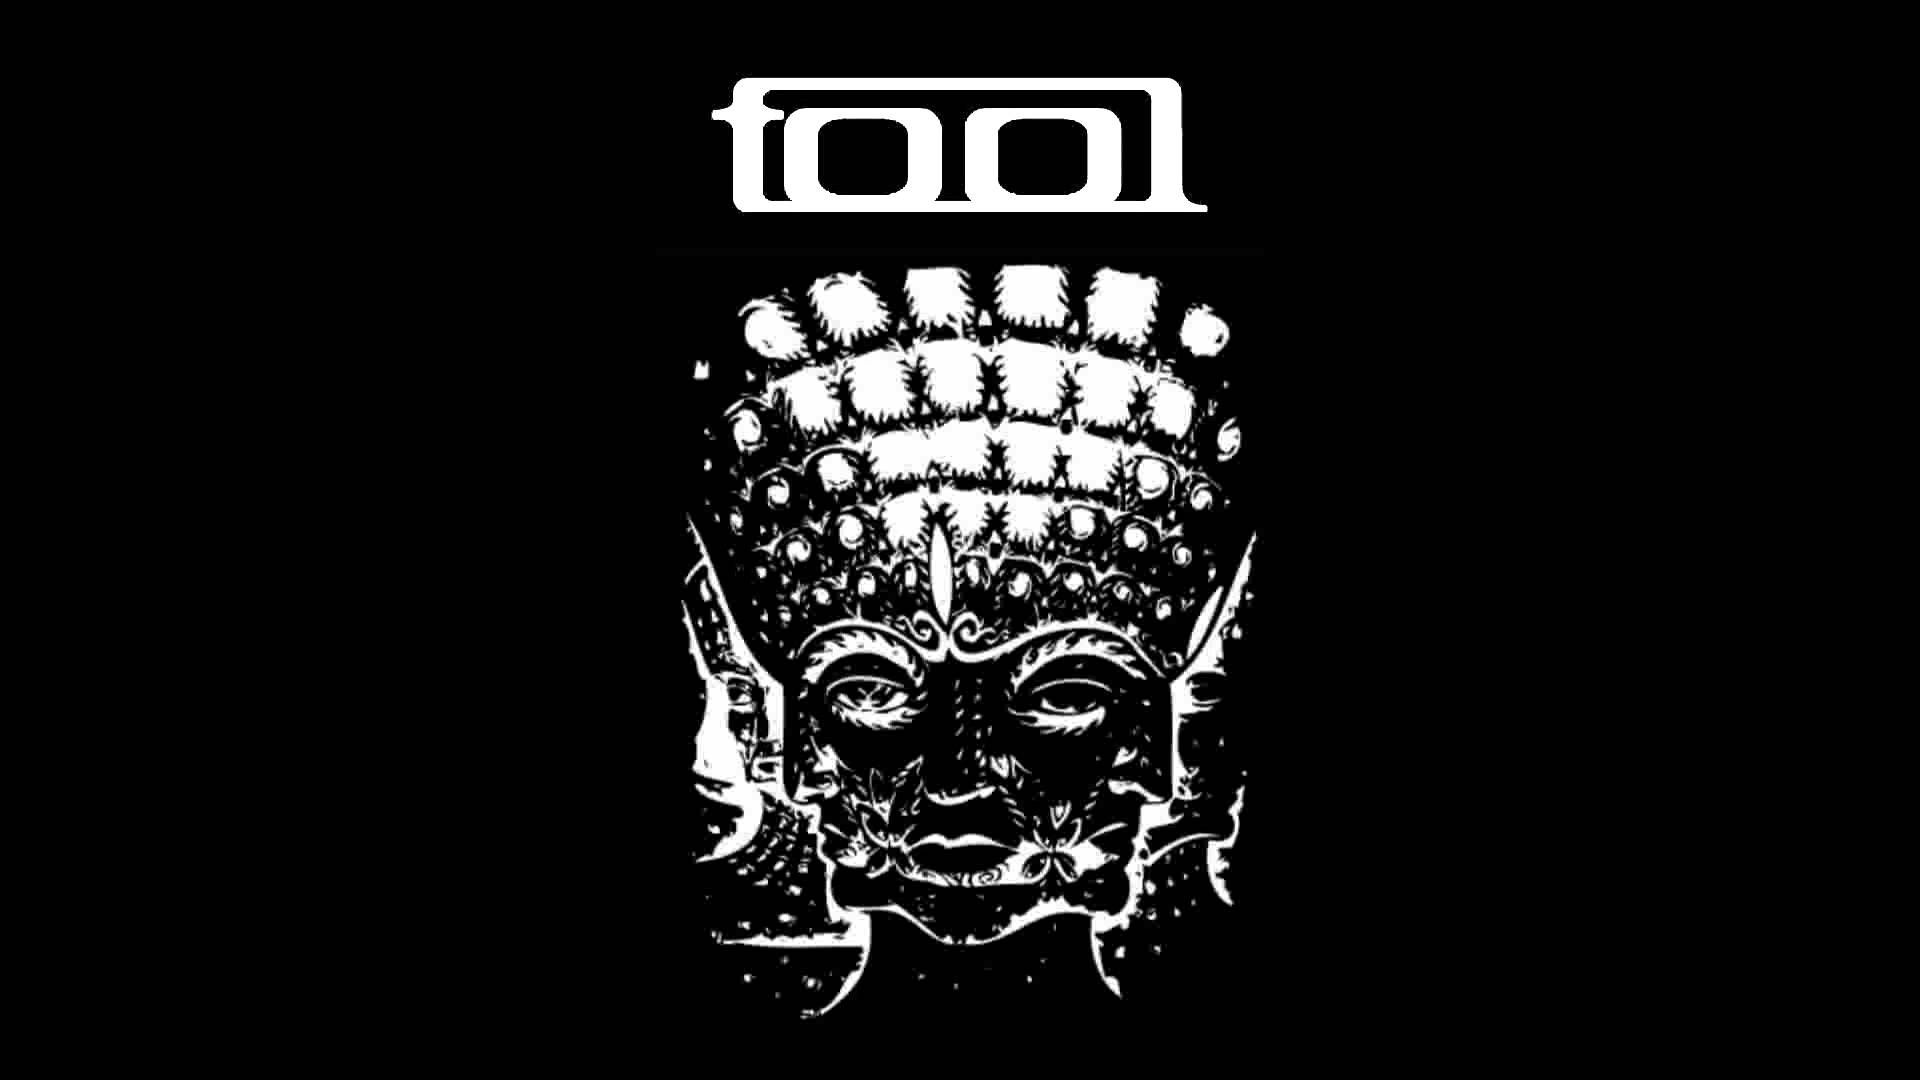 Tool 10 000 Days Hidden Track Full Perfect Sync One Of My